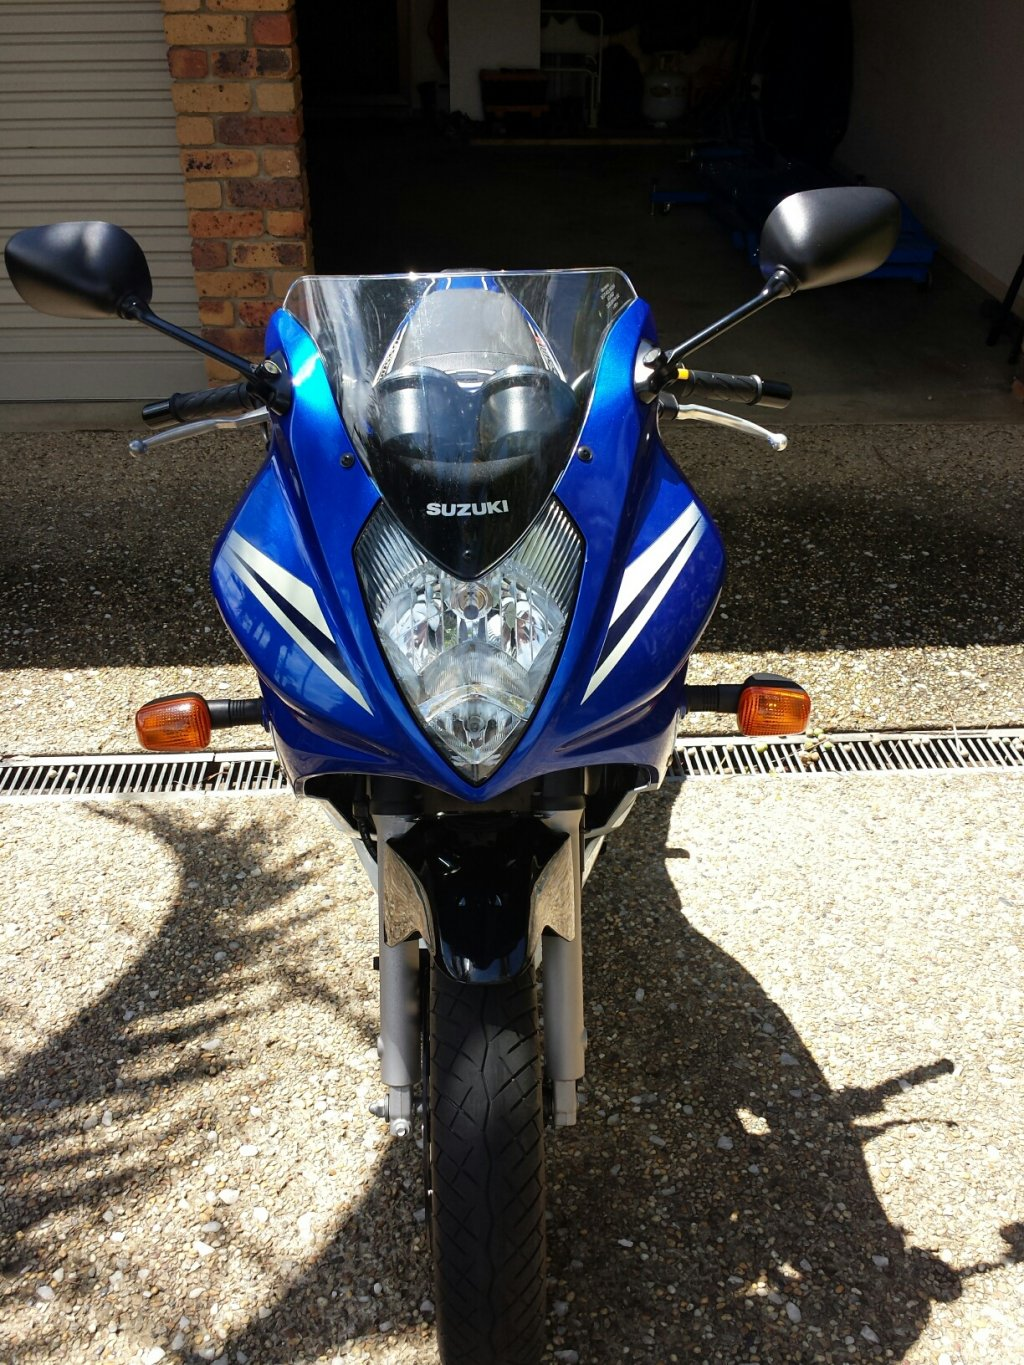 2007 Suzuki GS500F (Full Fairing)